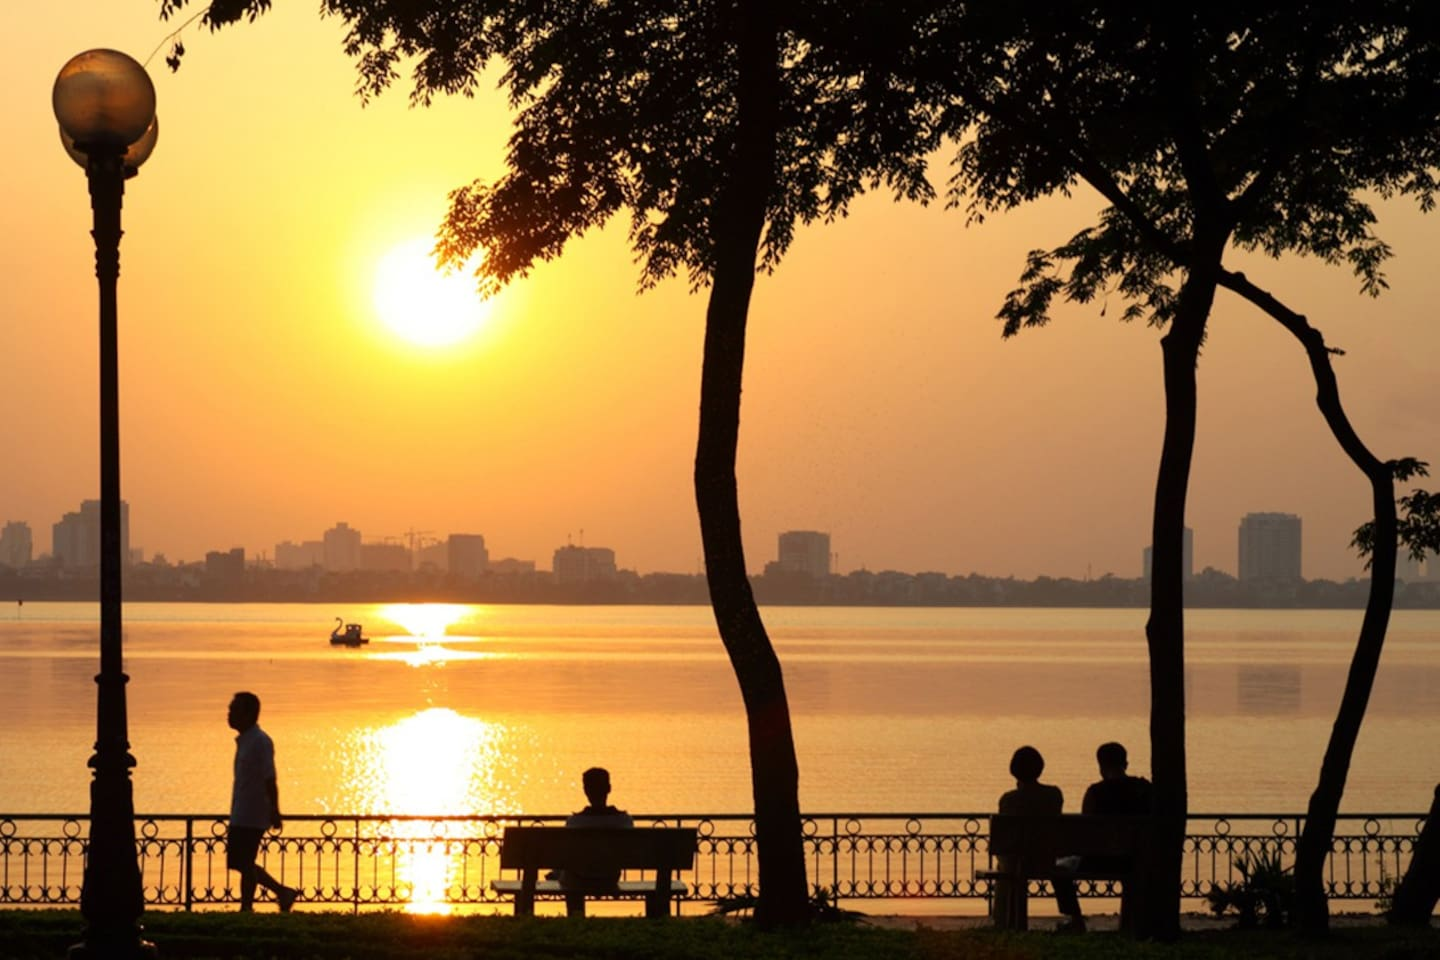 West Lake: 15 minutes from Ho CHi Minh Mausoleum